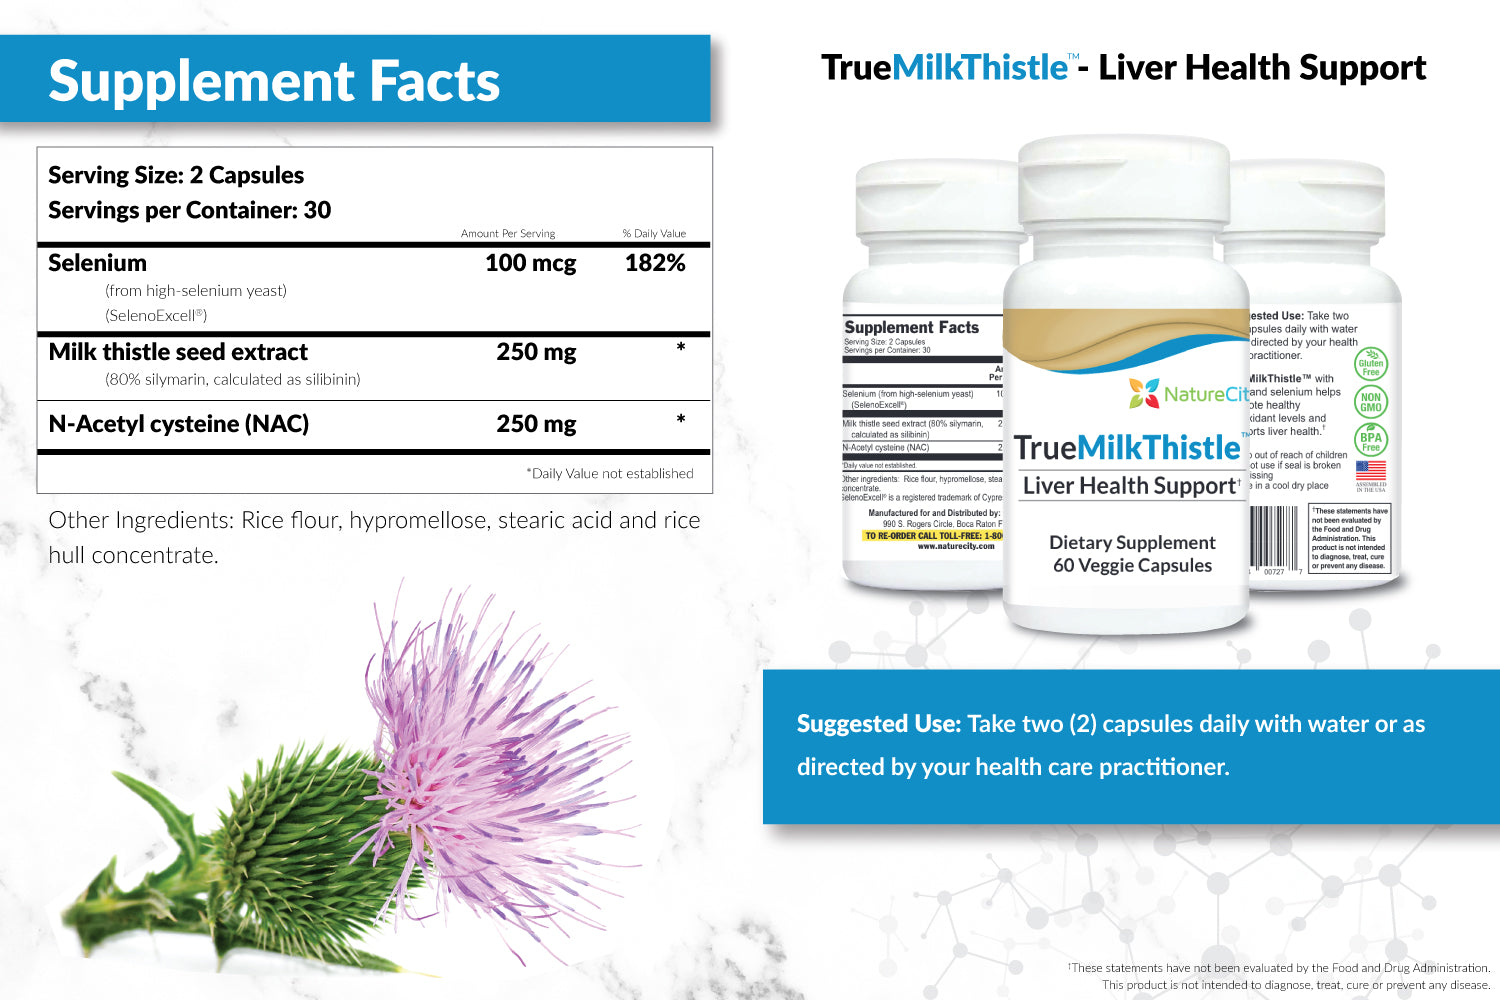 TrueMilkThistle Liver Detox Supplement Facts